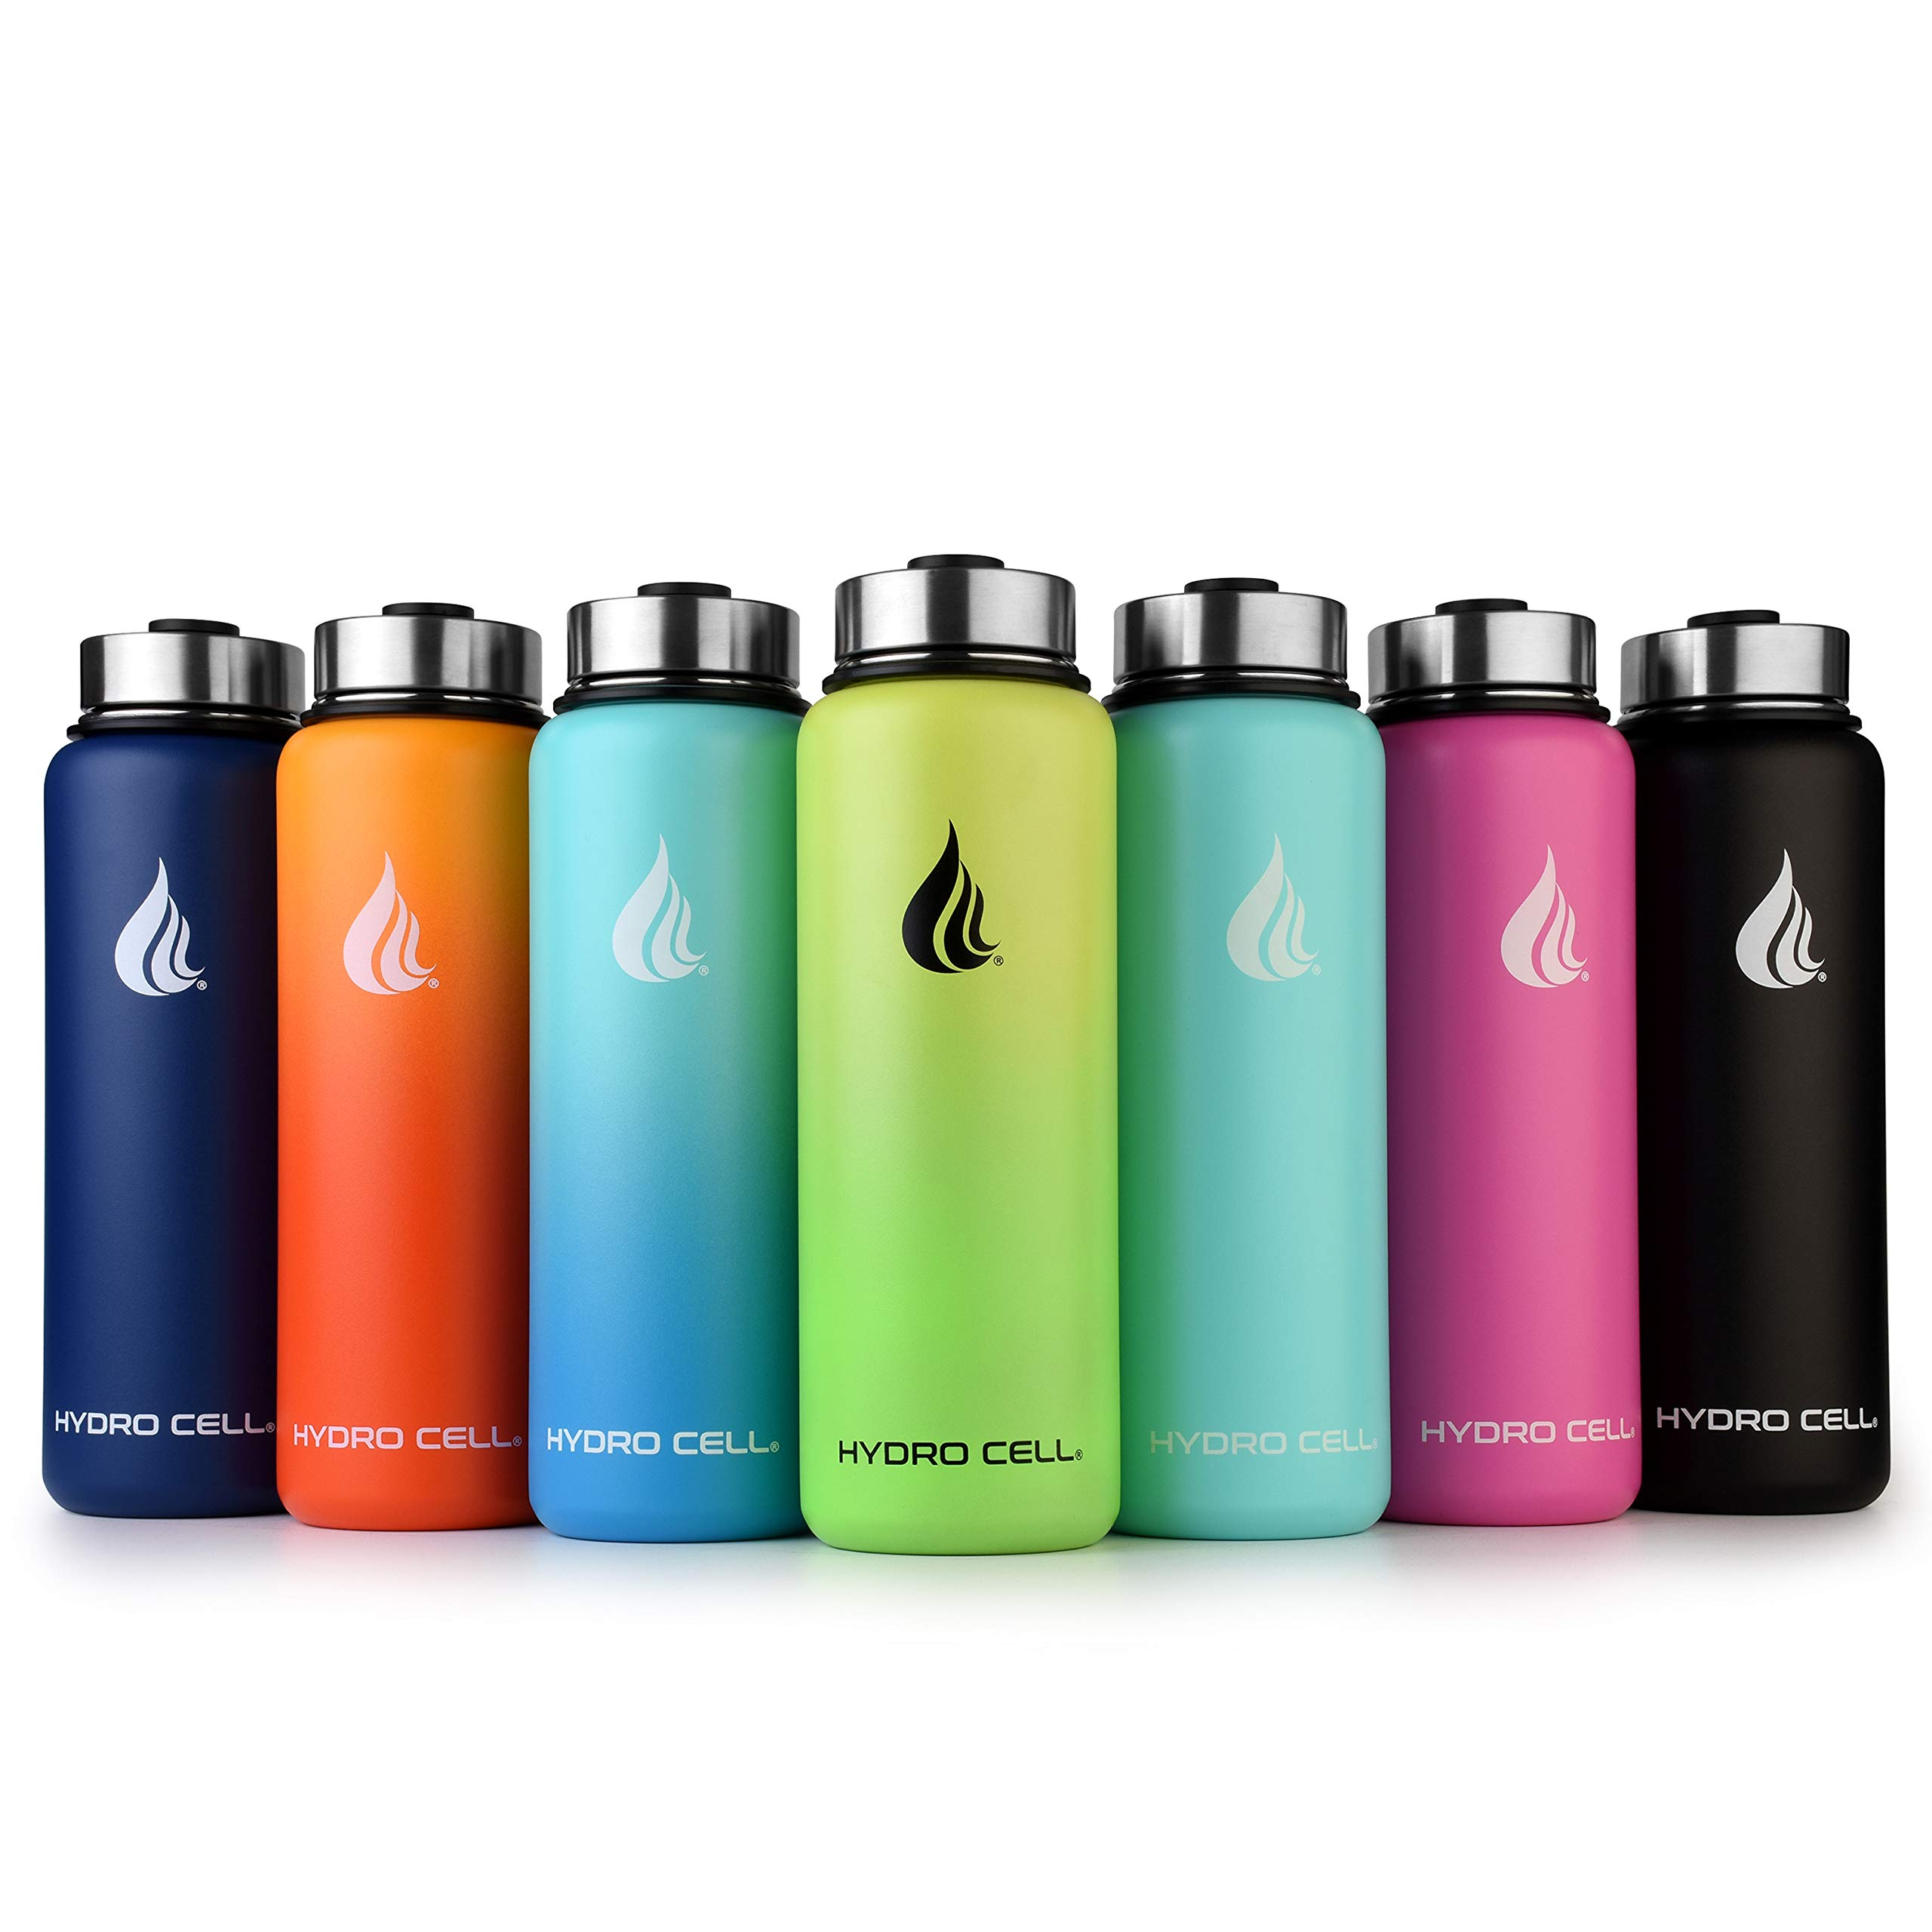 HYDRO CELL Stainless Steel Water Bottle with Straw & Wide Mouth Lids (40oz) - Keeps Liquids Perfectly Hot or Cold with Double Wall Vacuum Insulated Sweat Proof Sport Design (Teal 40oz) by HYDRO CELL